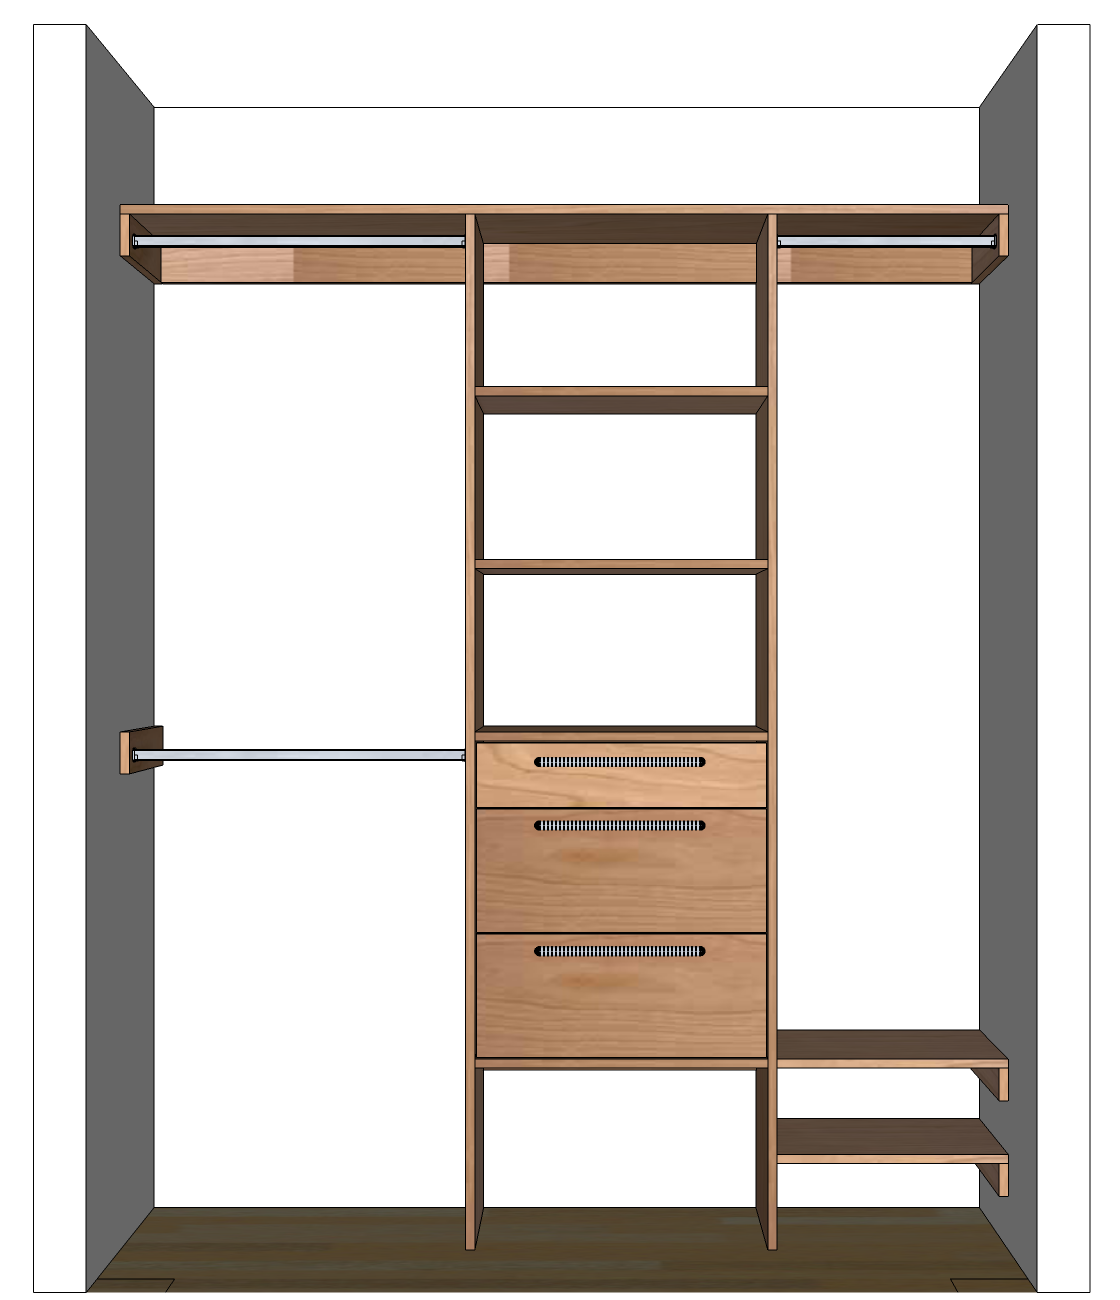 Tom Builds Stuff: DIY Closet Organizer Plans For 5u0027 to 8u0027 Closet